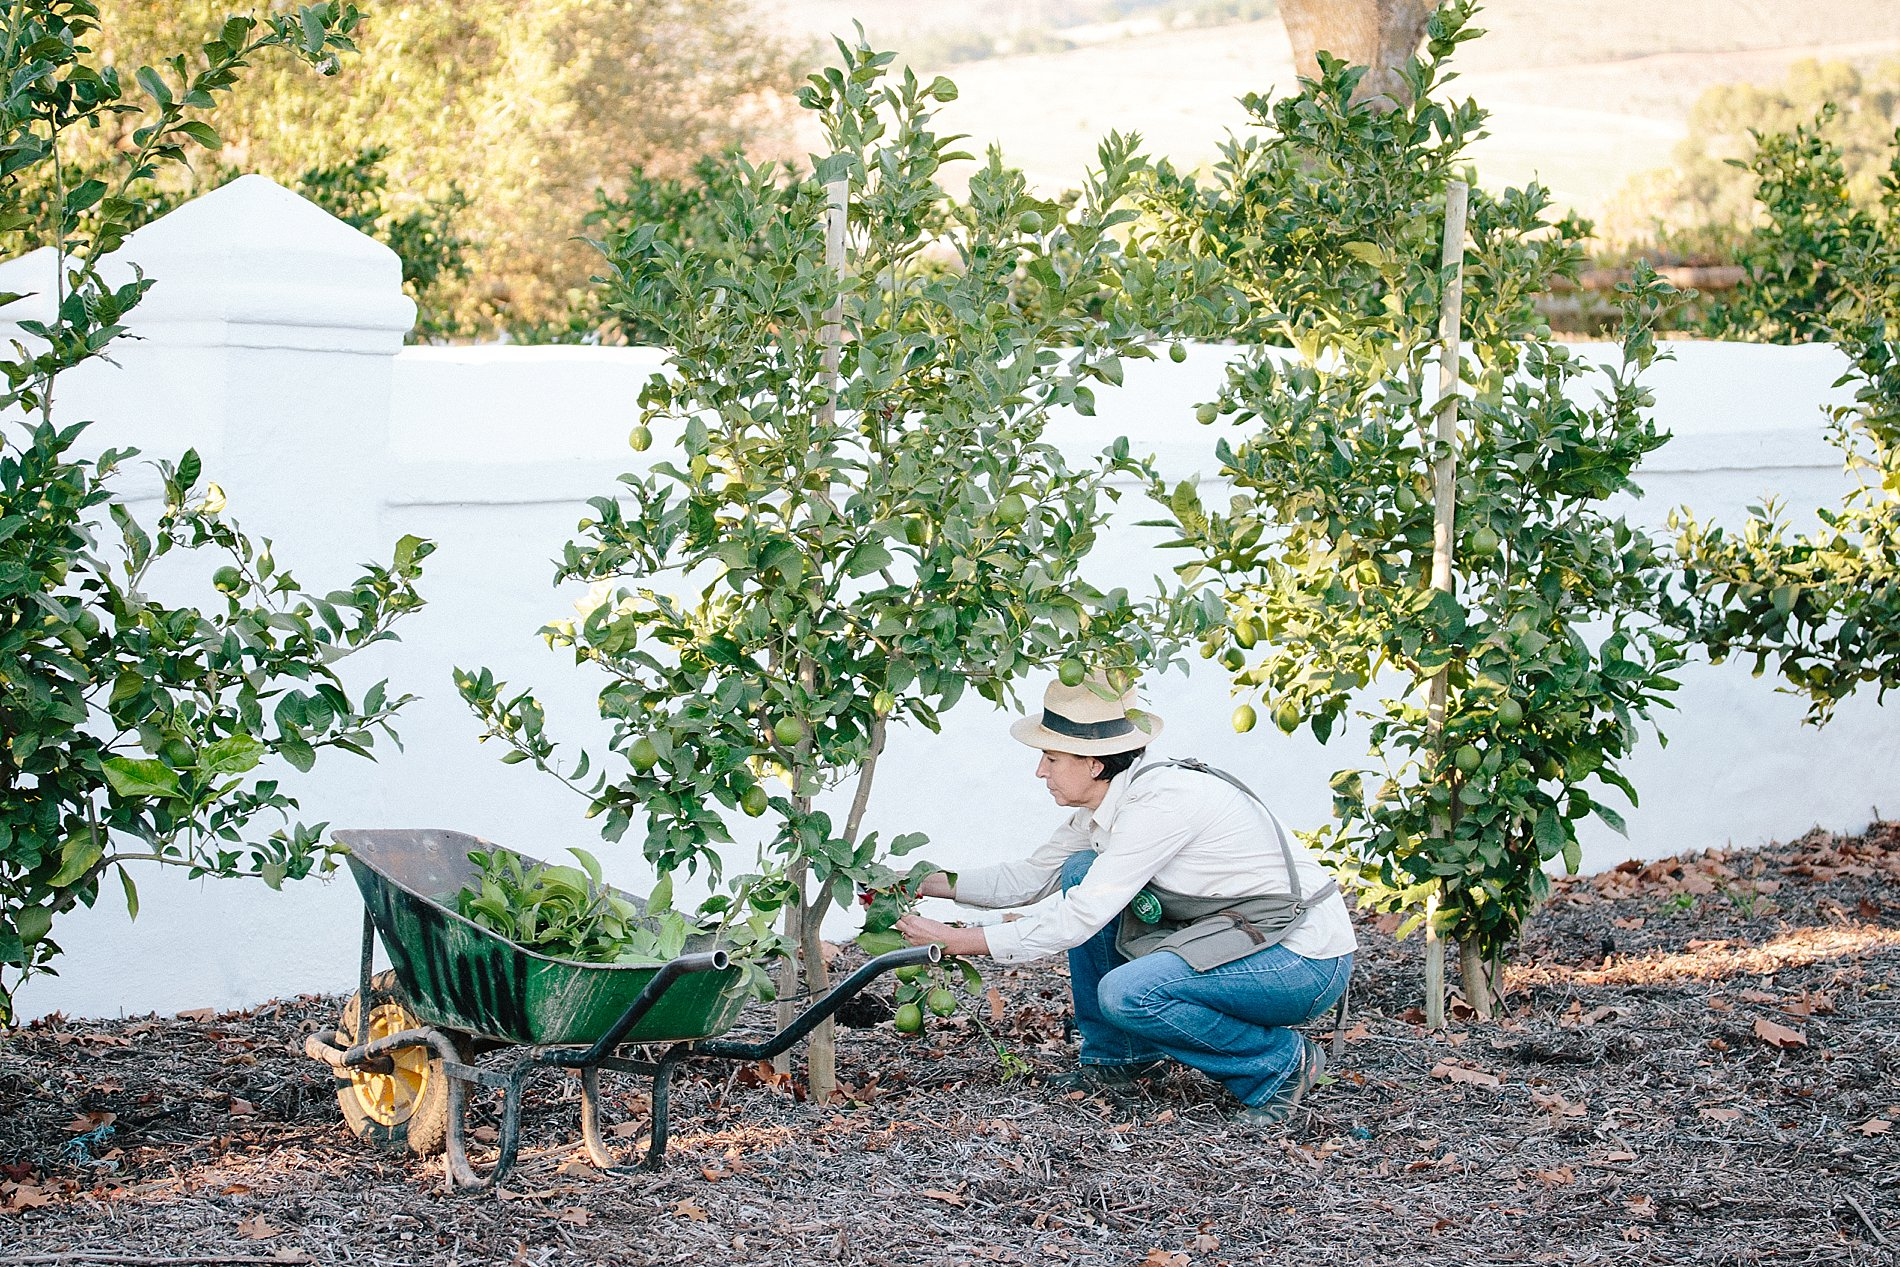 How to prune your lemon tree